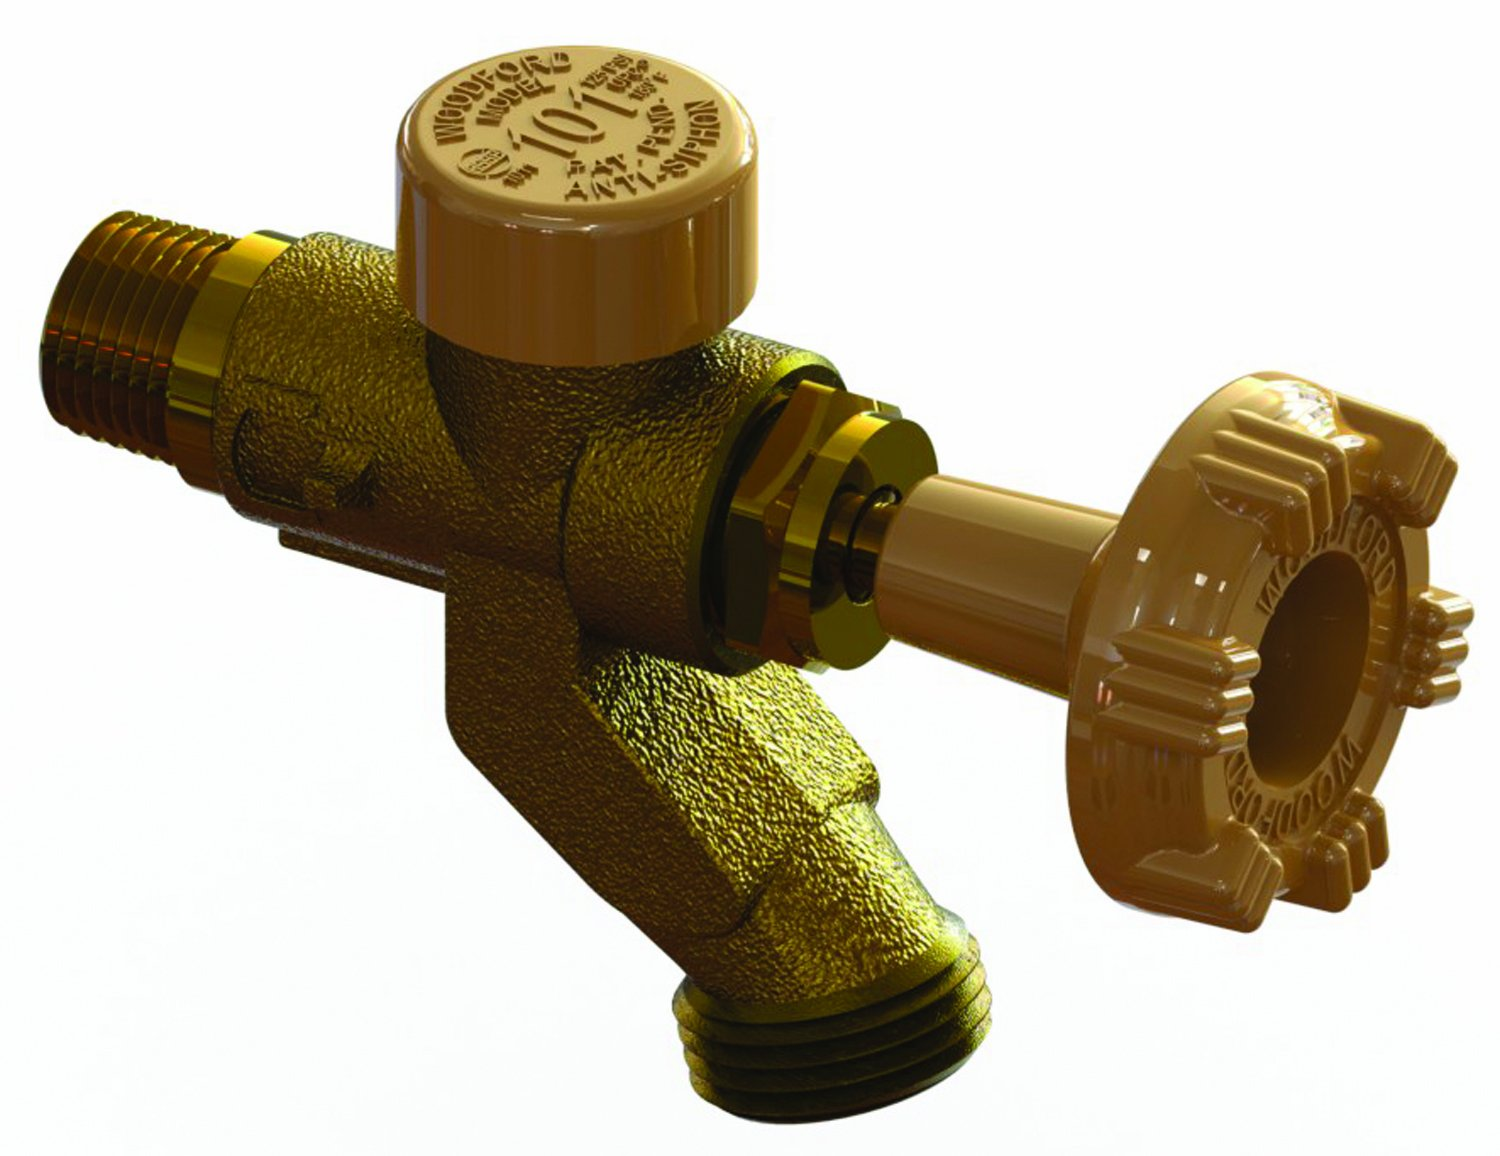 Woodford V122P Model V122P Hot and Cold Faucet by Woodford